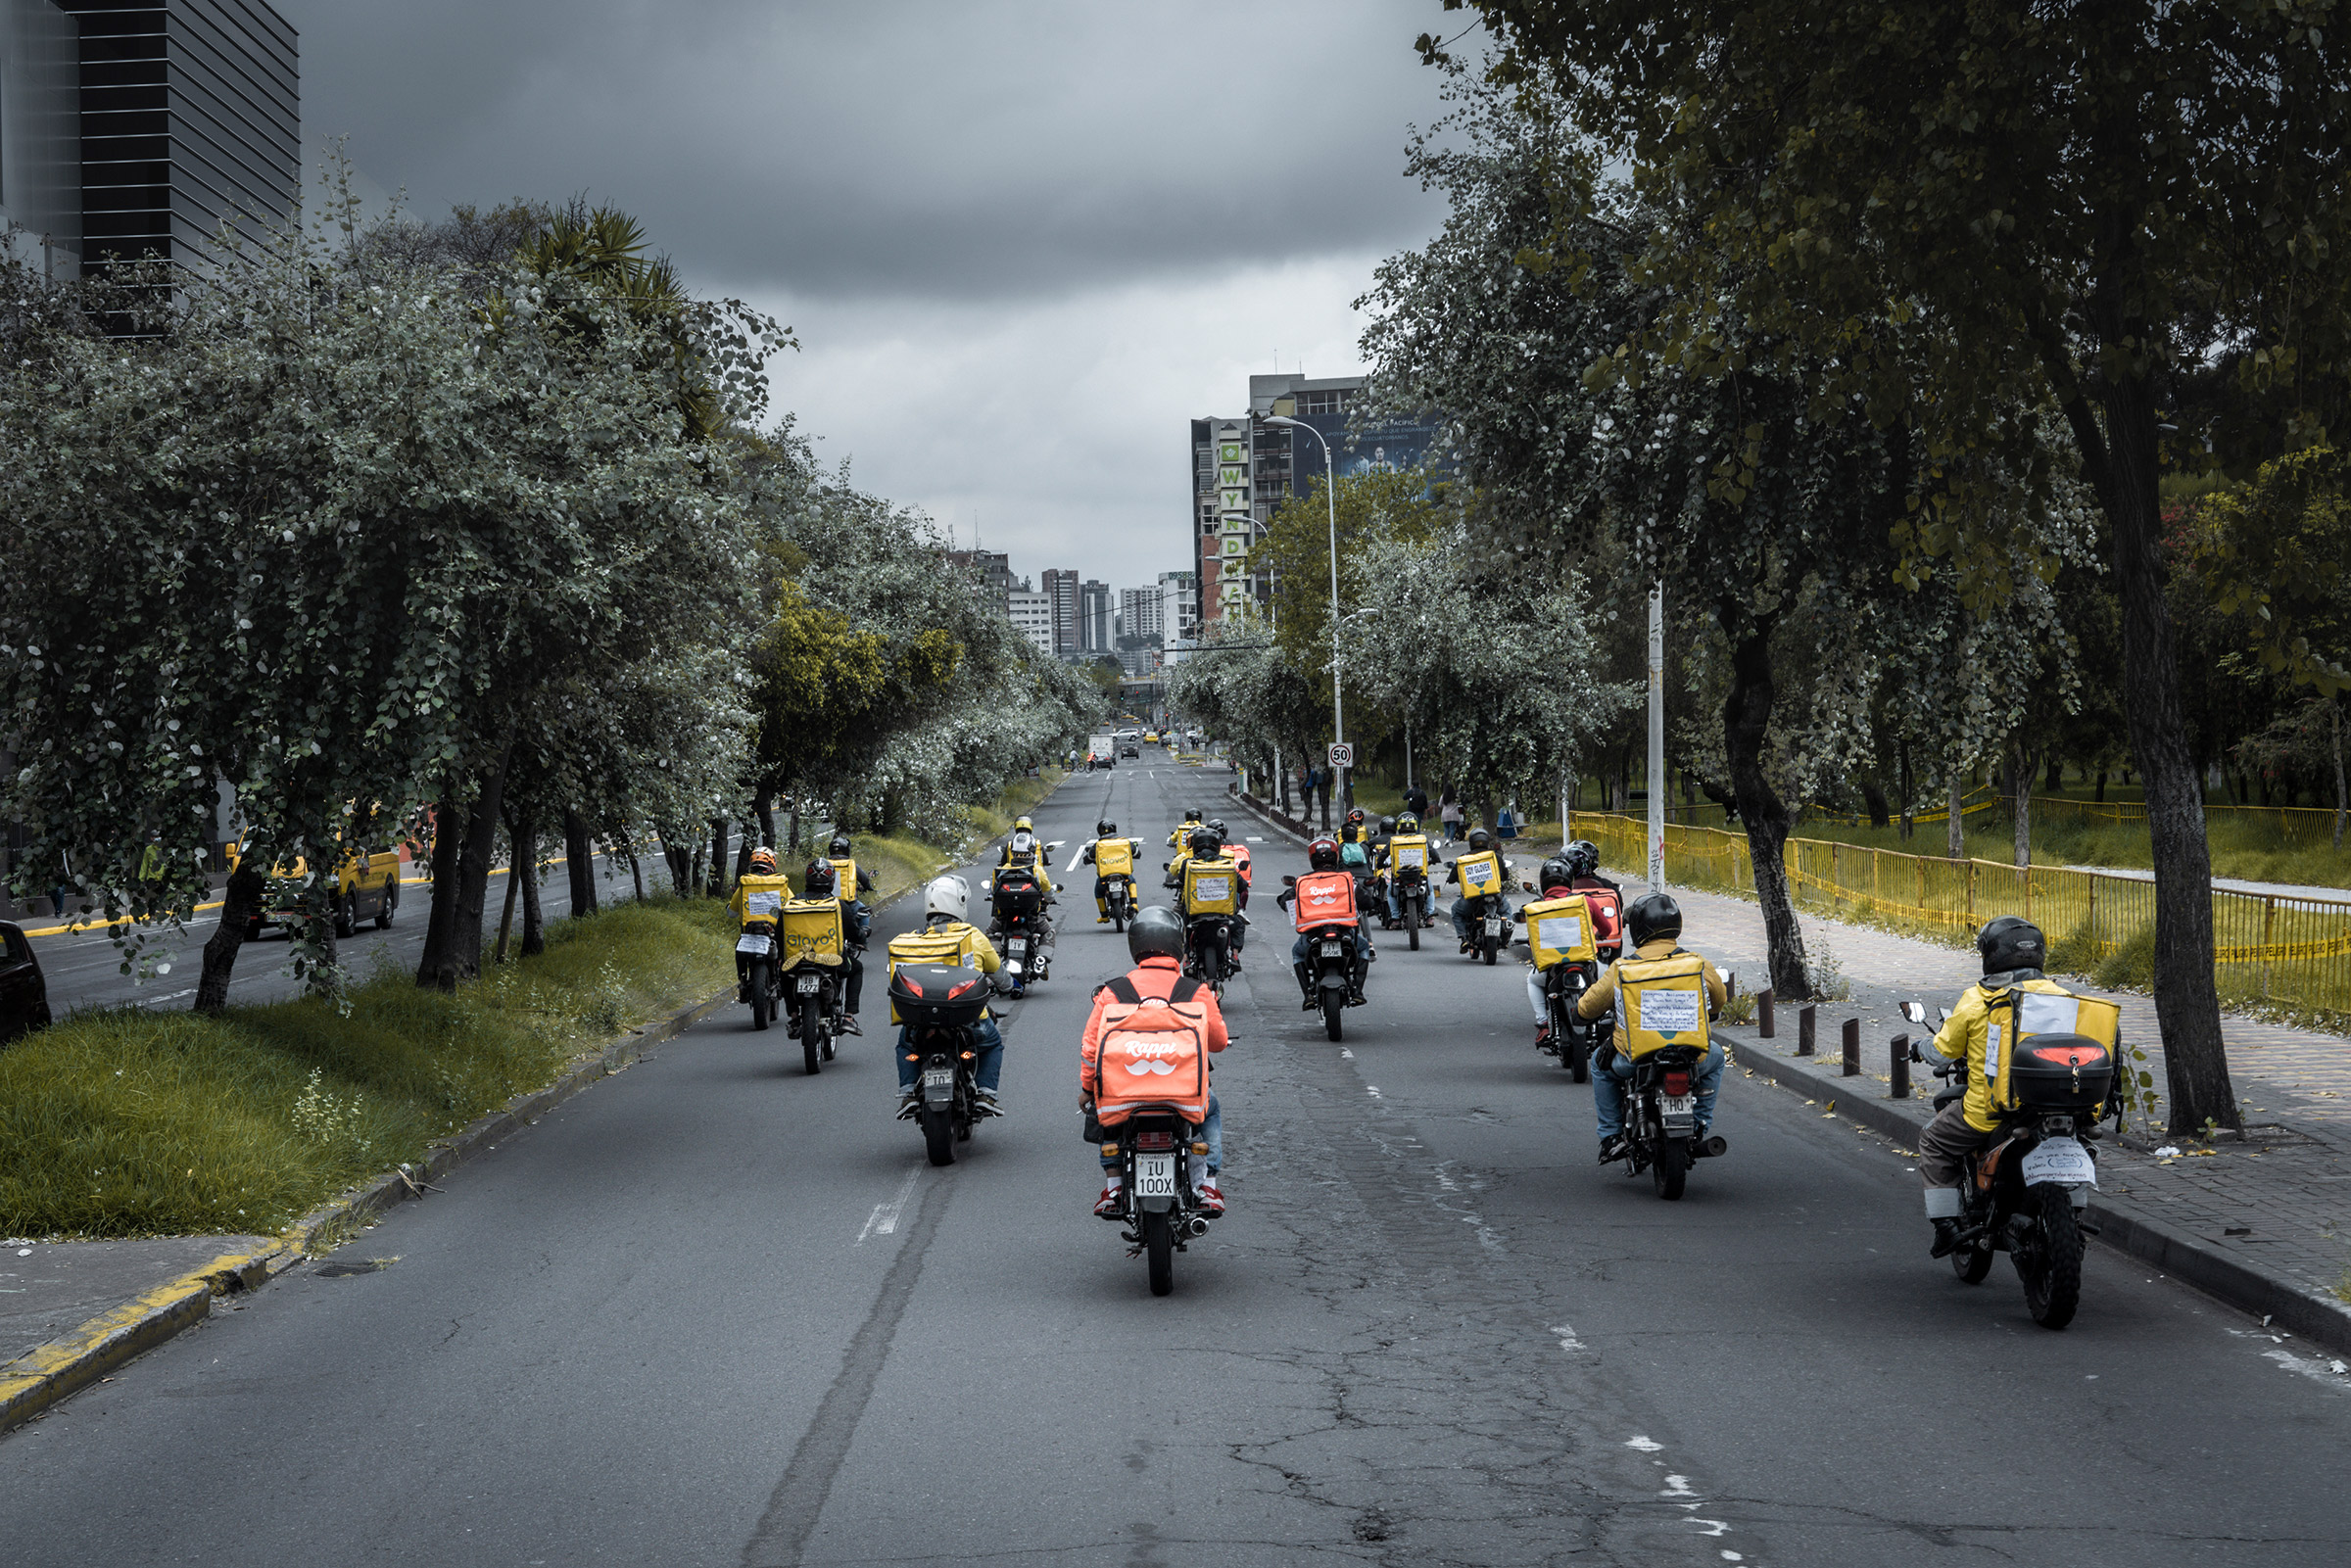 Delivery drivers ride during a global protest in May 2020, in Quito, Ecuador. Drivers from 11 countries, mainly in Latin America, protested under the motto  I won't deliver,  asking for fair payment and job security for their work.